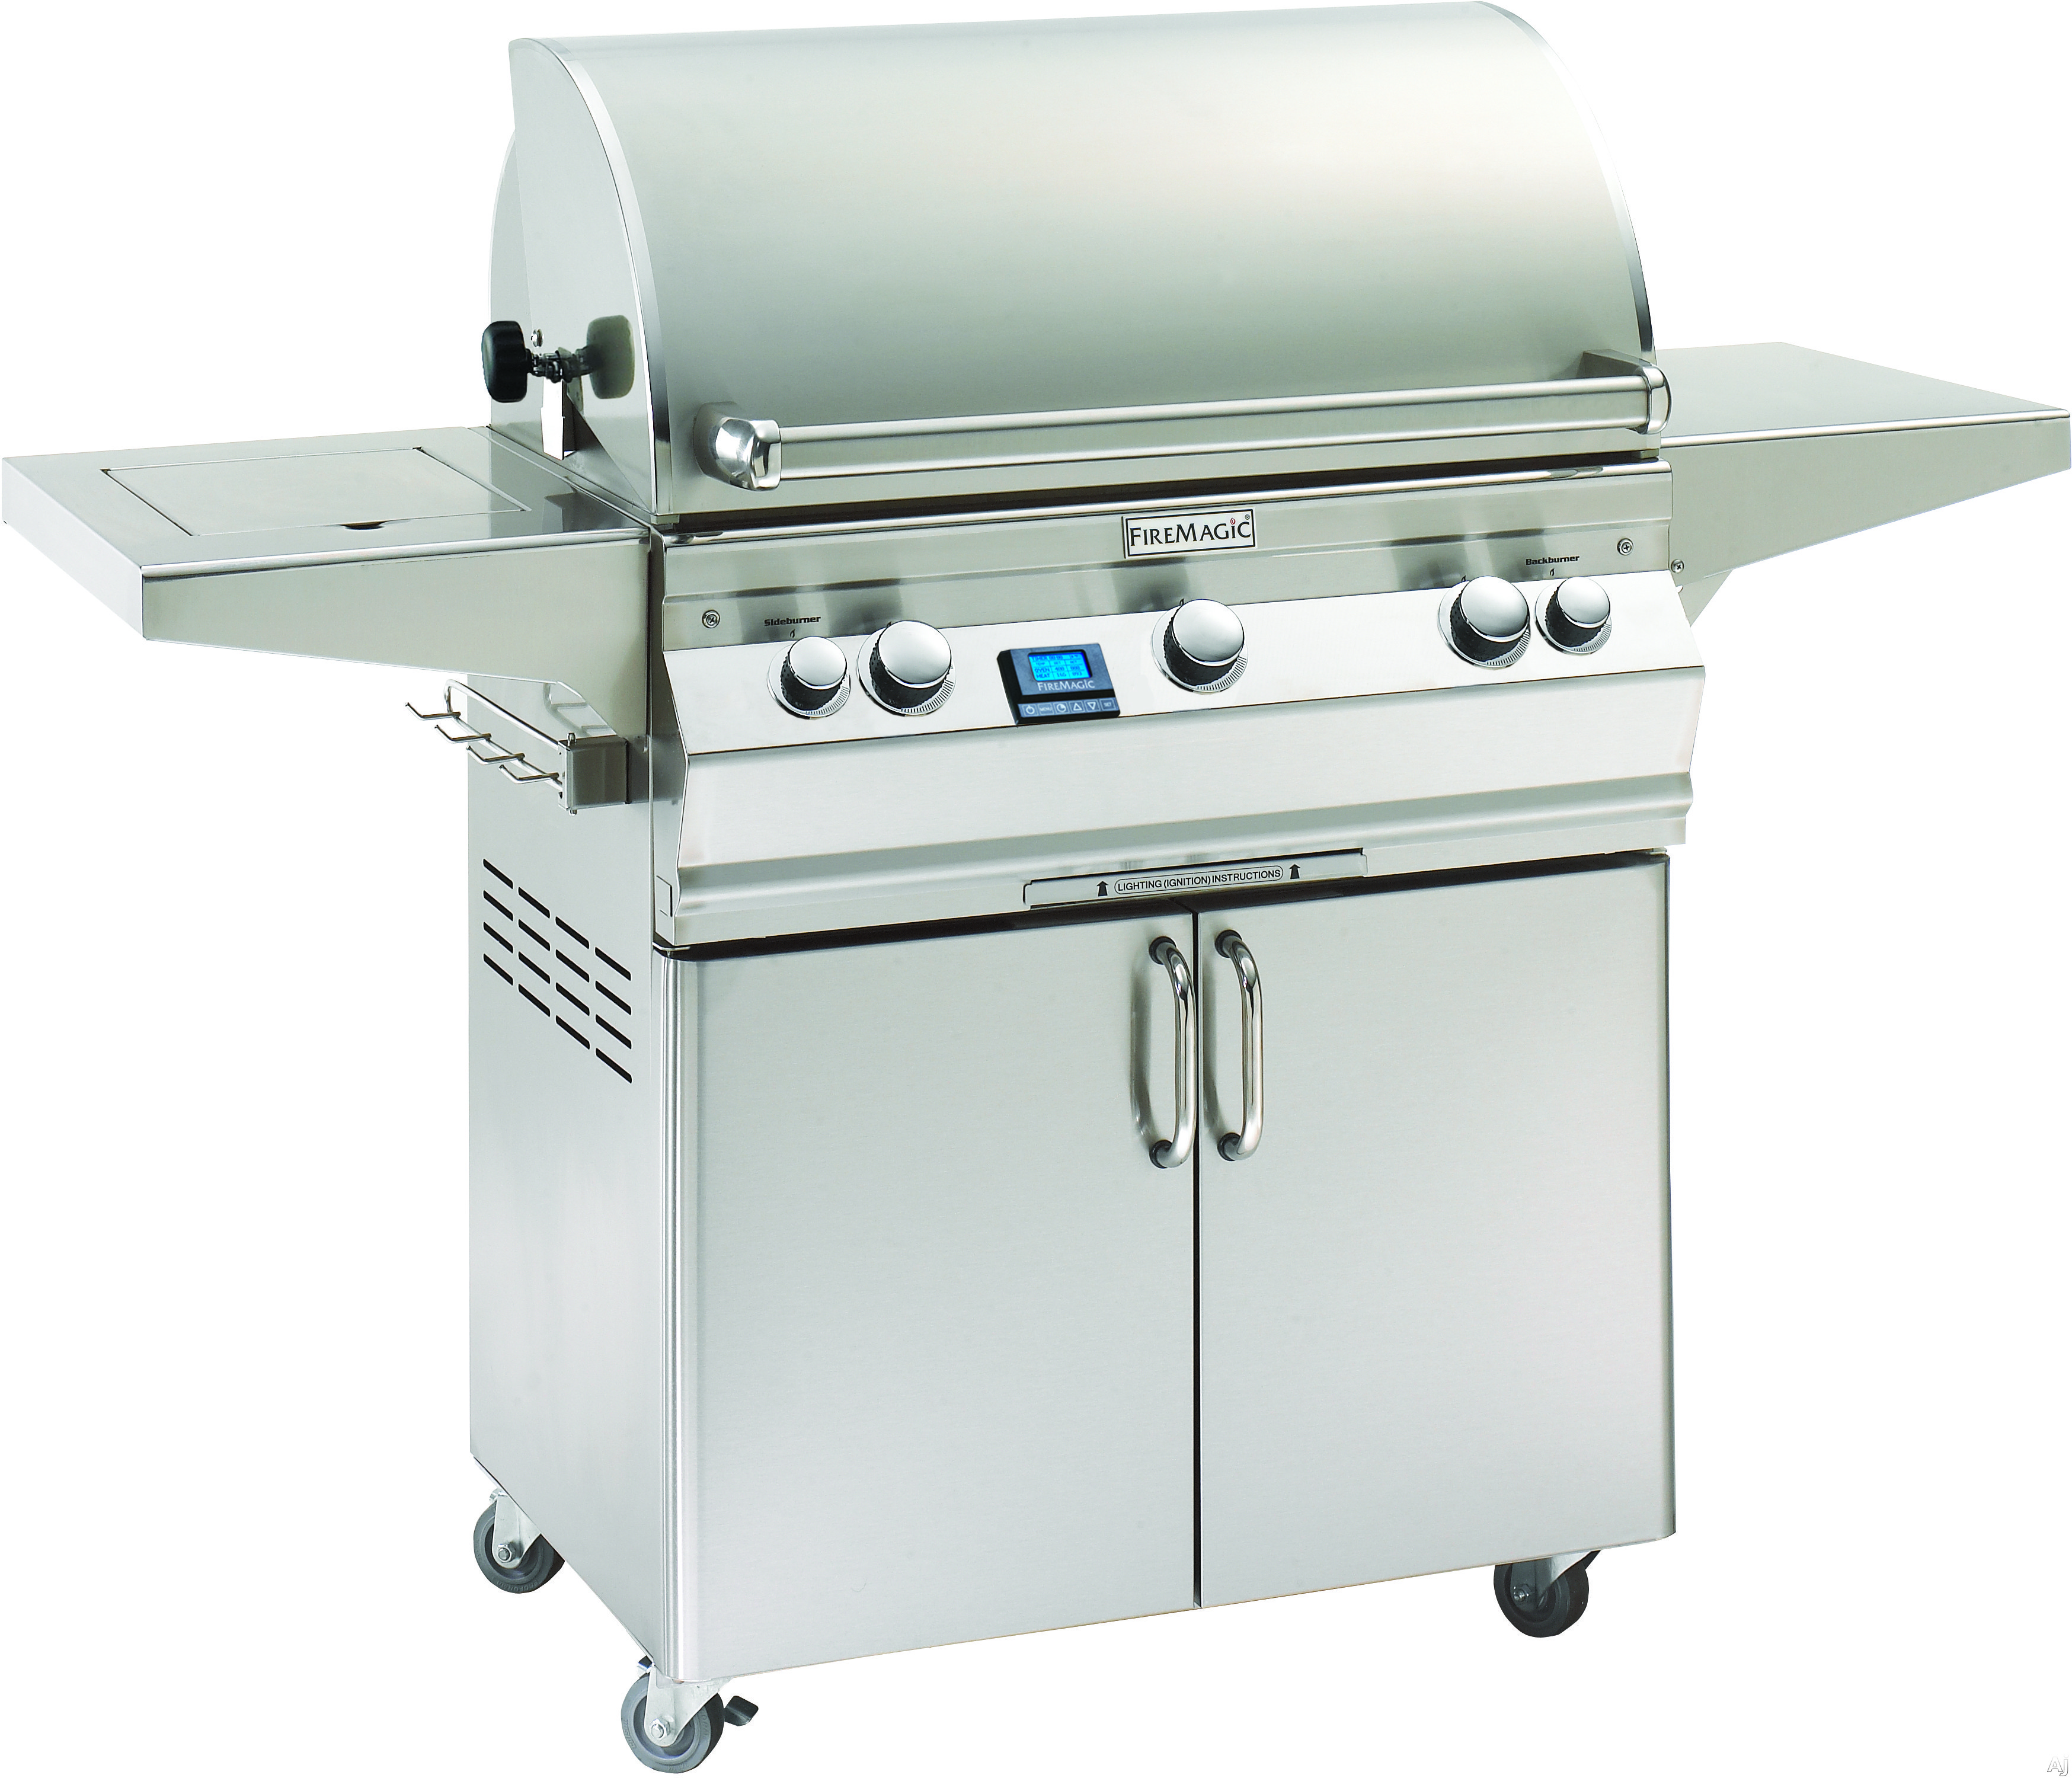 Image of Fire Magic Aurora Collection A540S6E1N62 30 Inch Freestanding Gas Grill with 540 sq. in. Cooking Surface, 60,000 BTU, 17,000 BTU Backburner, 15,000 BTU Side Burner and Interior Halogen Lights: Natural Gas, With Rotisserie